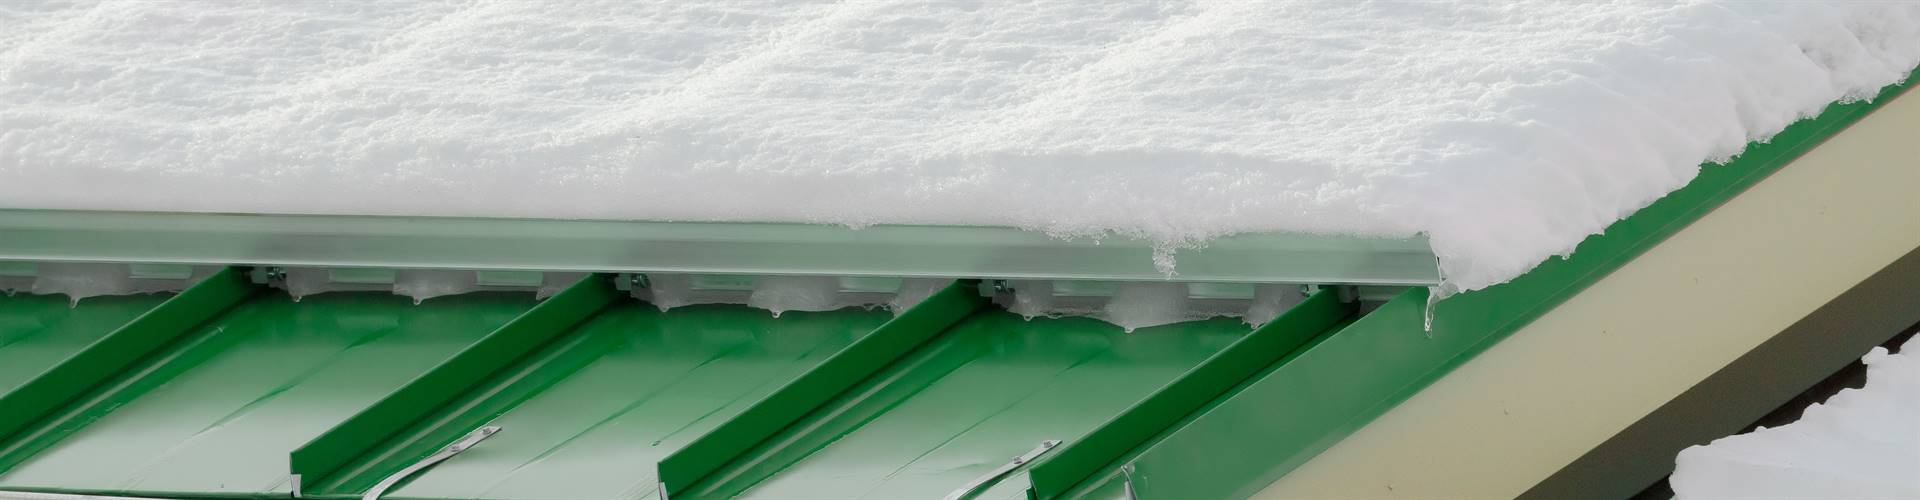 SNOW GUARDS BUILT FOR INSTALLERS WITH NO TIME FOR MESSING AROUND